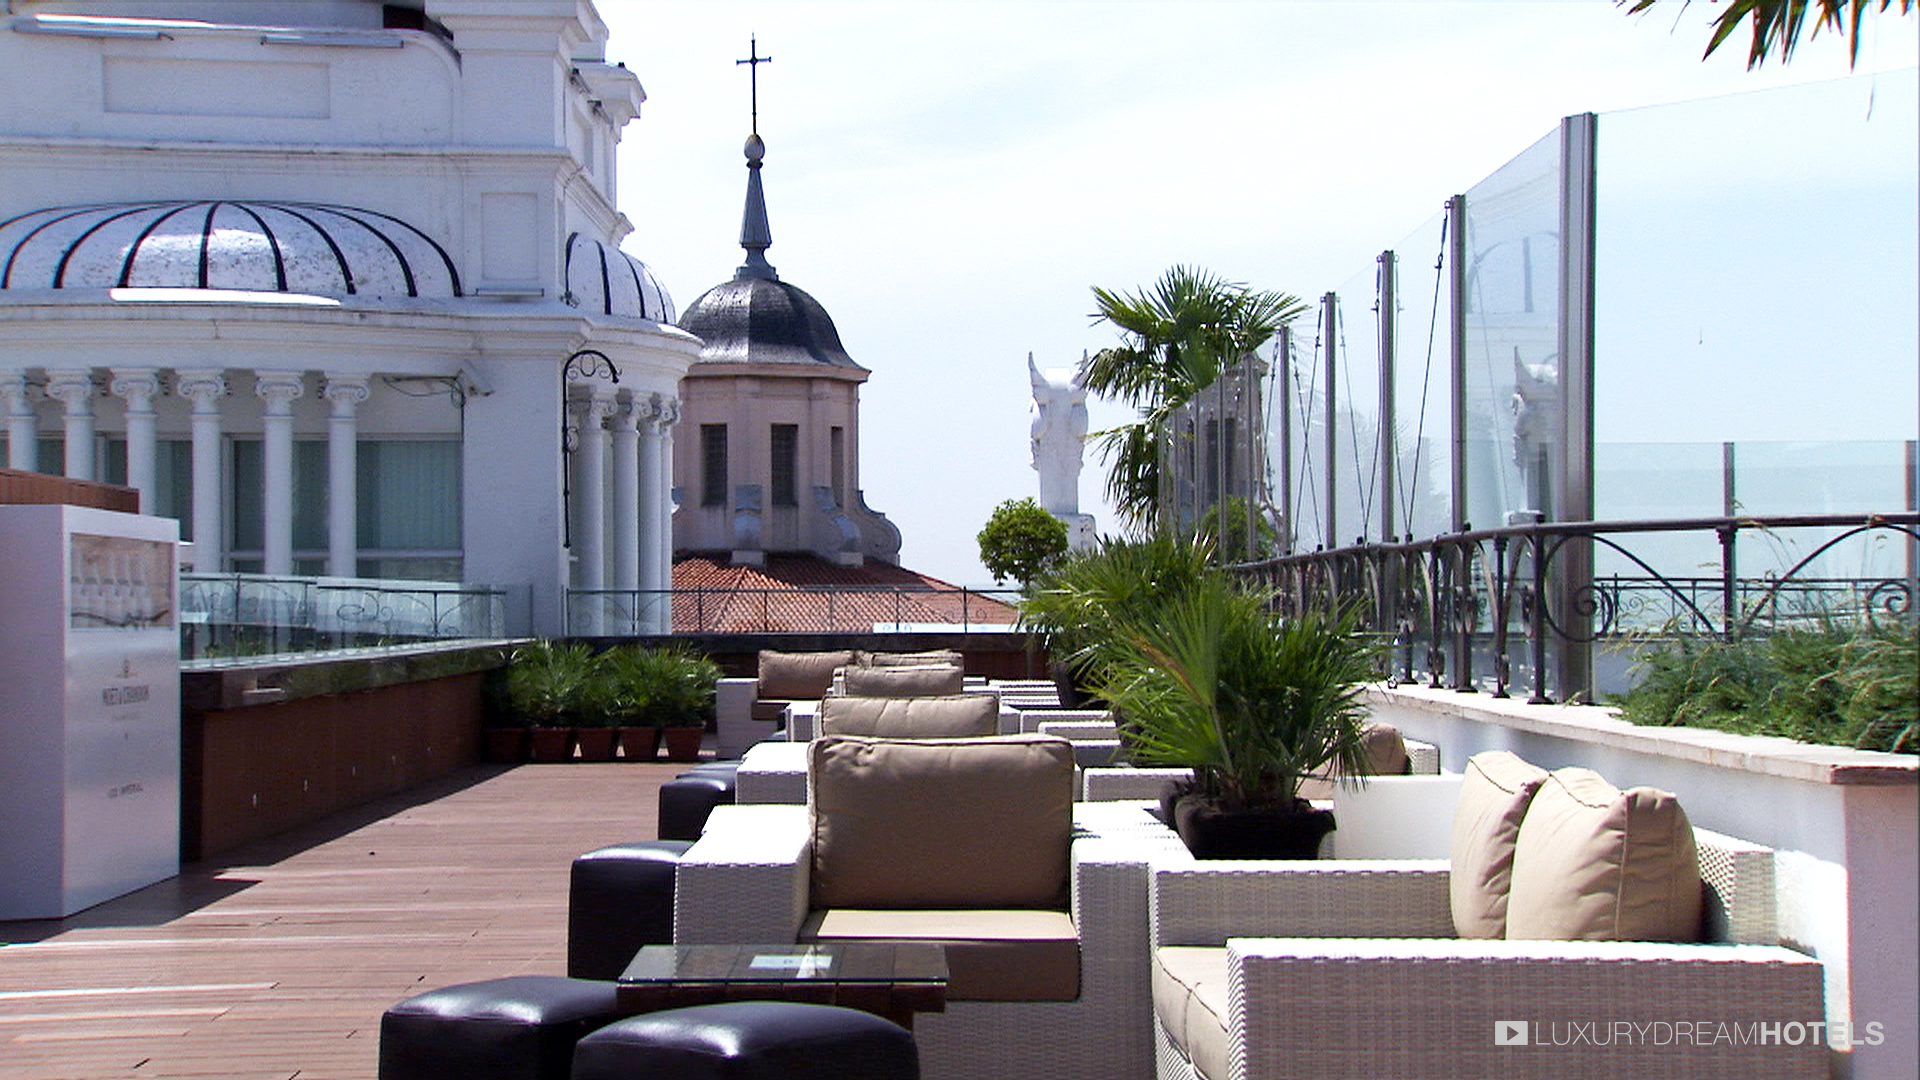 Madrid Hotell Fabulous Gallery Image Of This Property